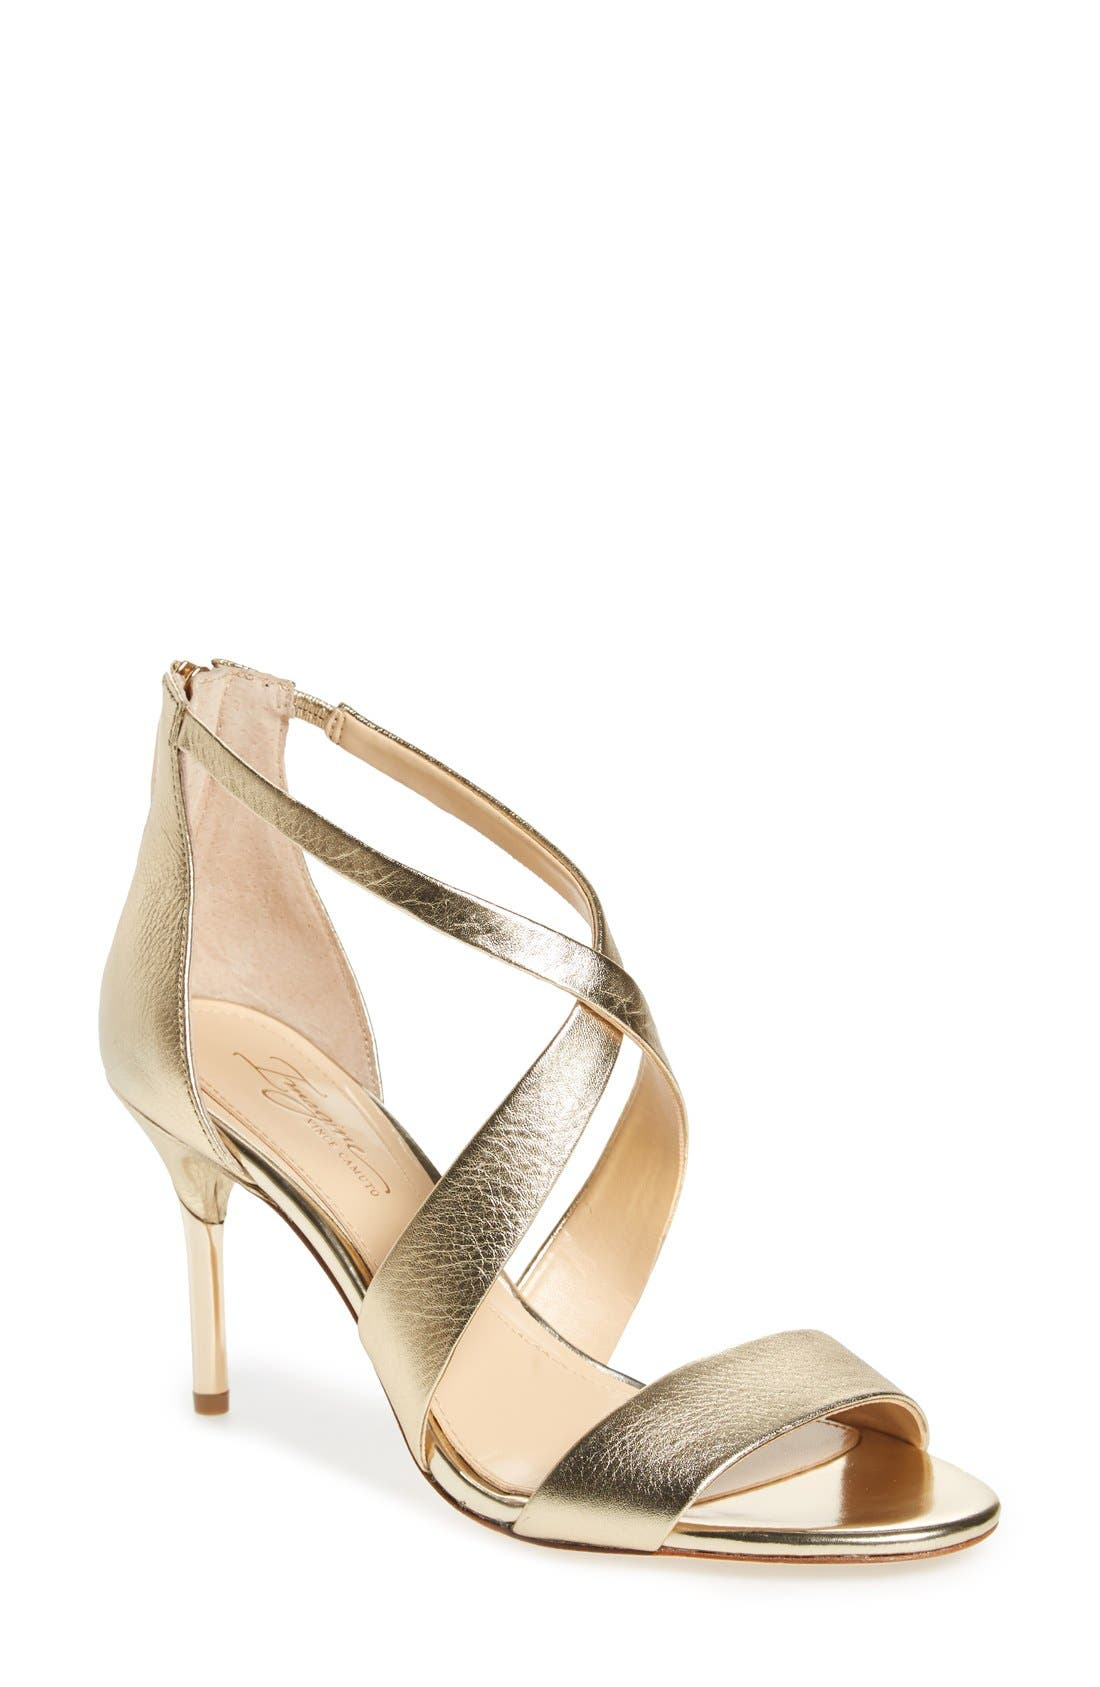 'Pascal 2' Strappy Evening Sandal,                             Main thumbnail 1, color,                             Soft Gold Leather